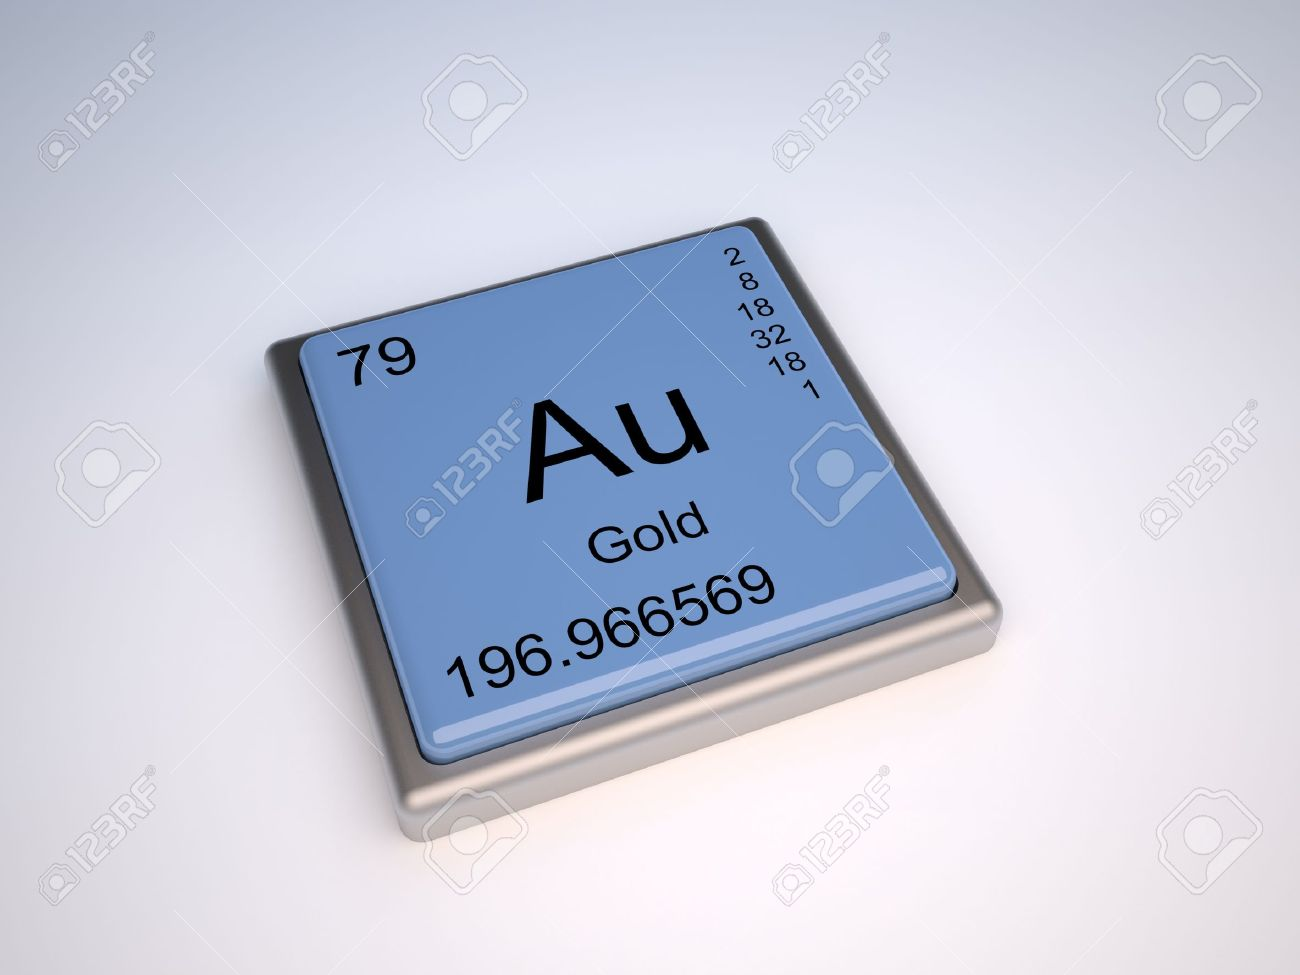 Symbol for gold periodic table image collections periodic table gold periodic table symbol images periodic table images gold chemical element of the periodic table with gamestrikefo Gallery